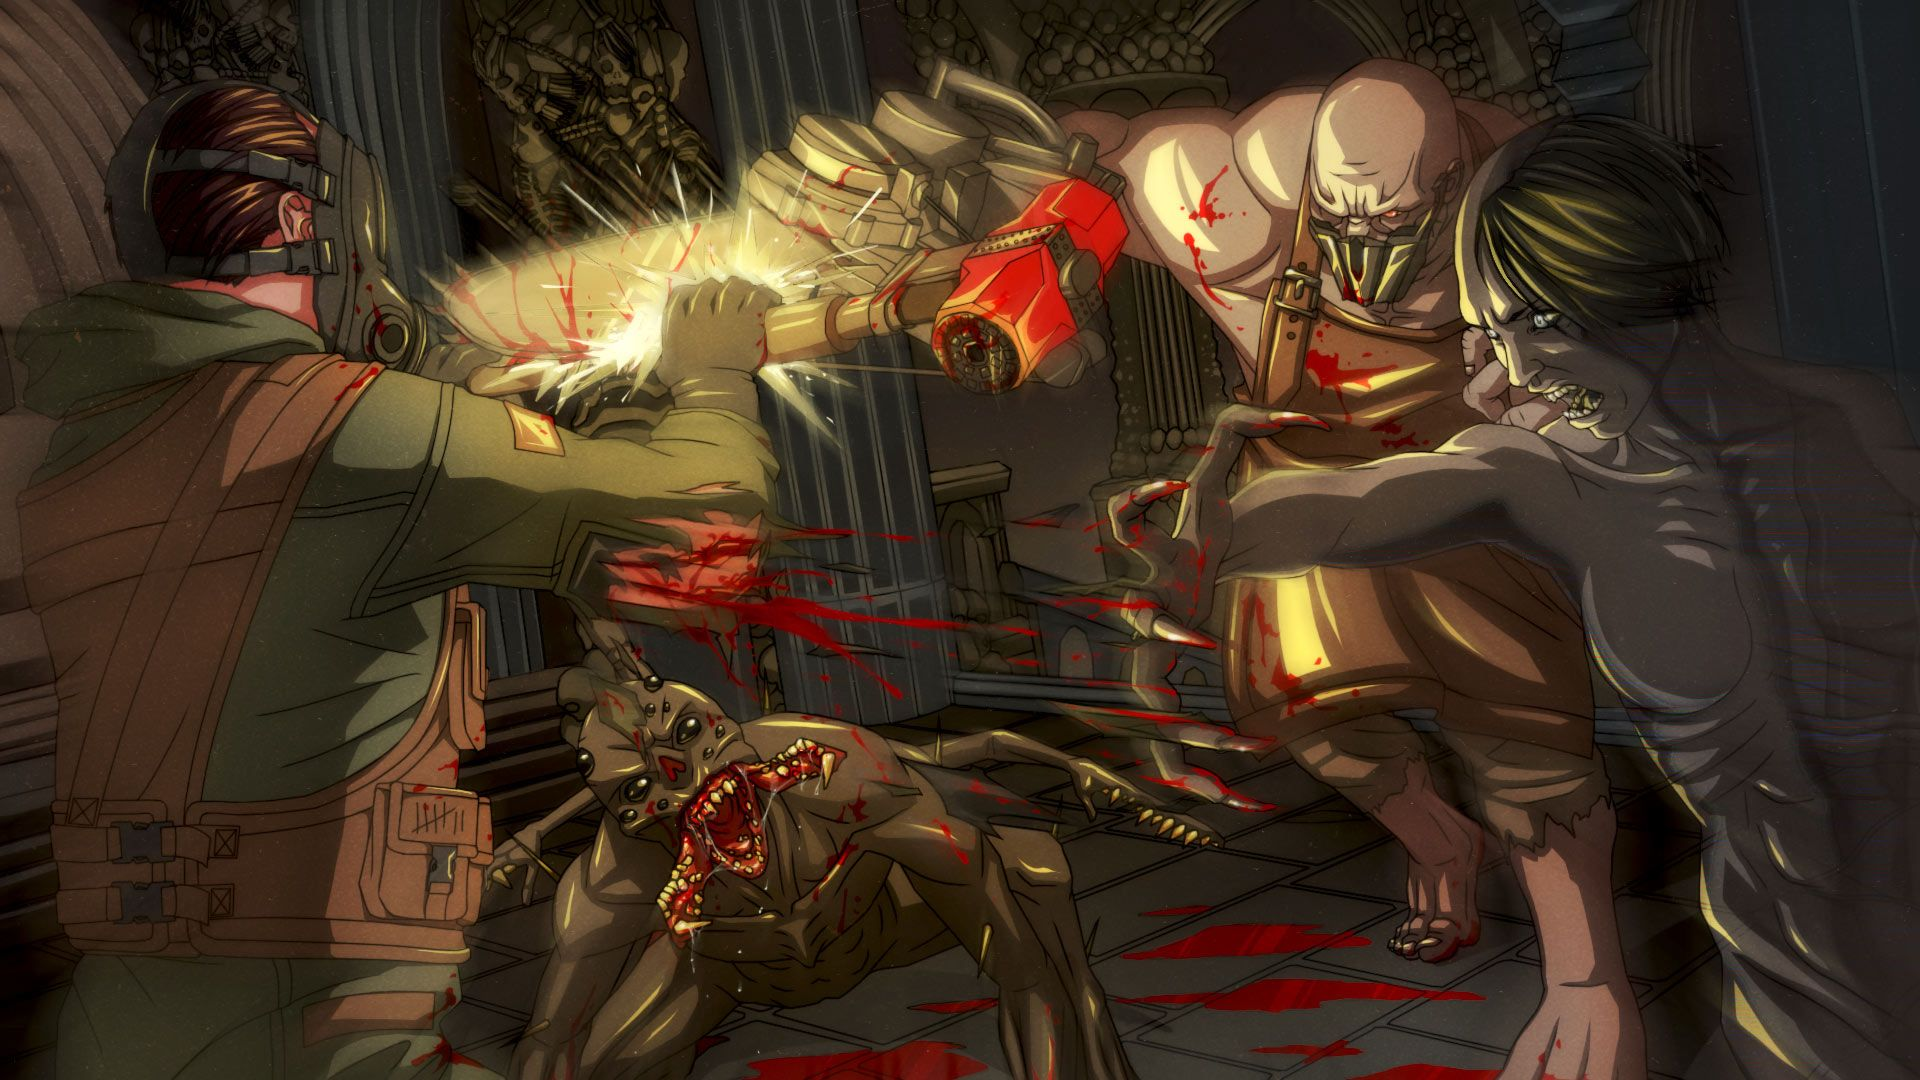 Killing Floor 2 Hd Wallpaper Posted By Zoey Thompson